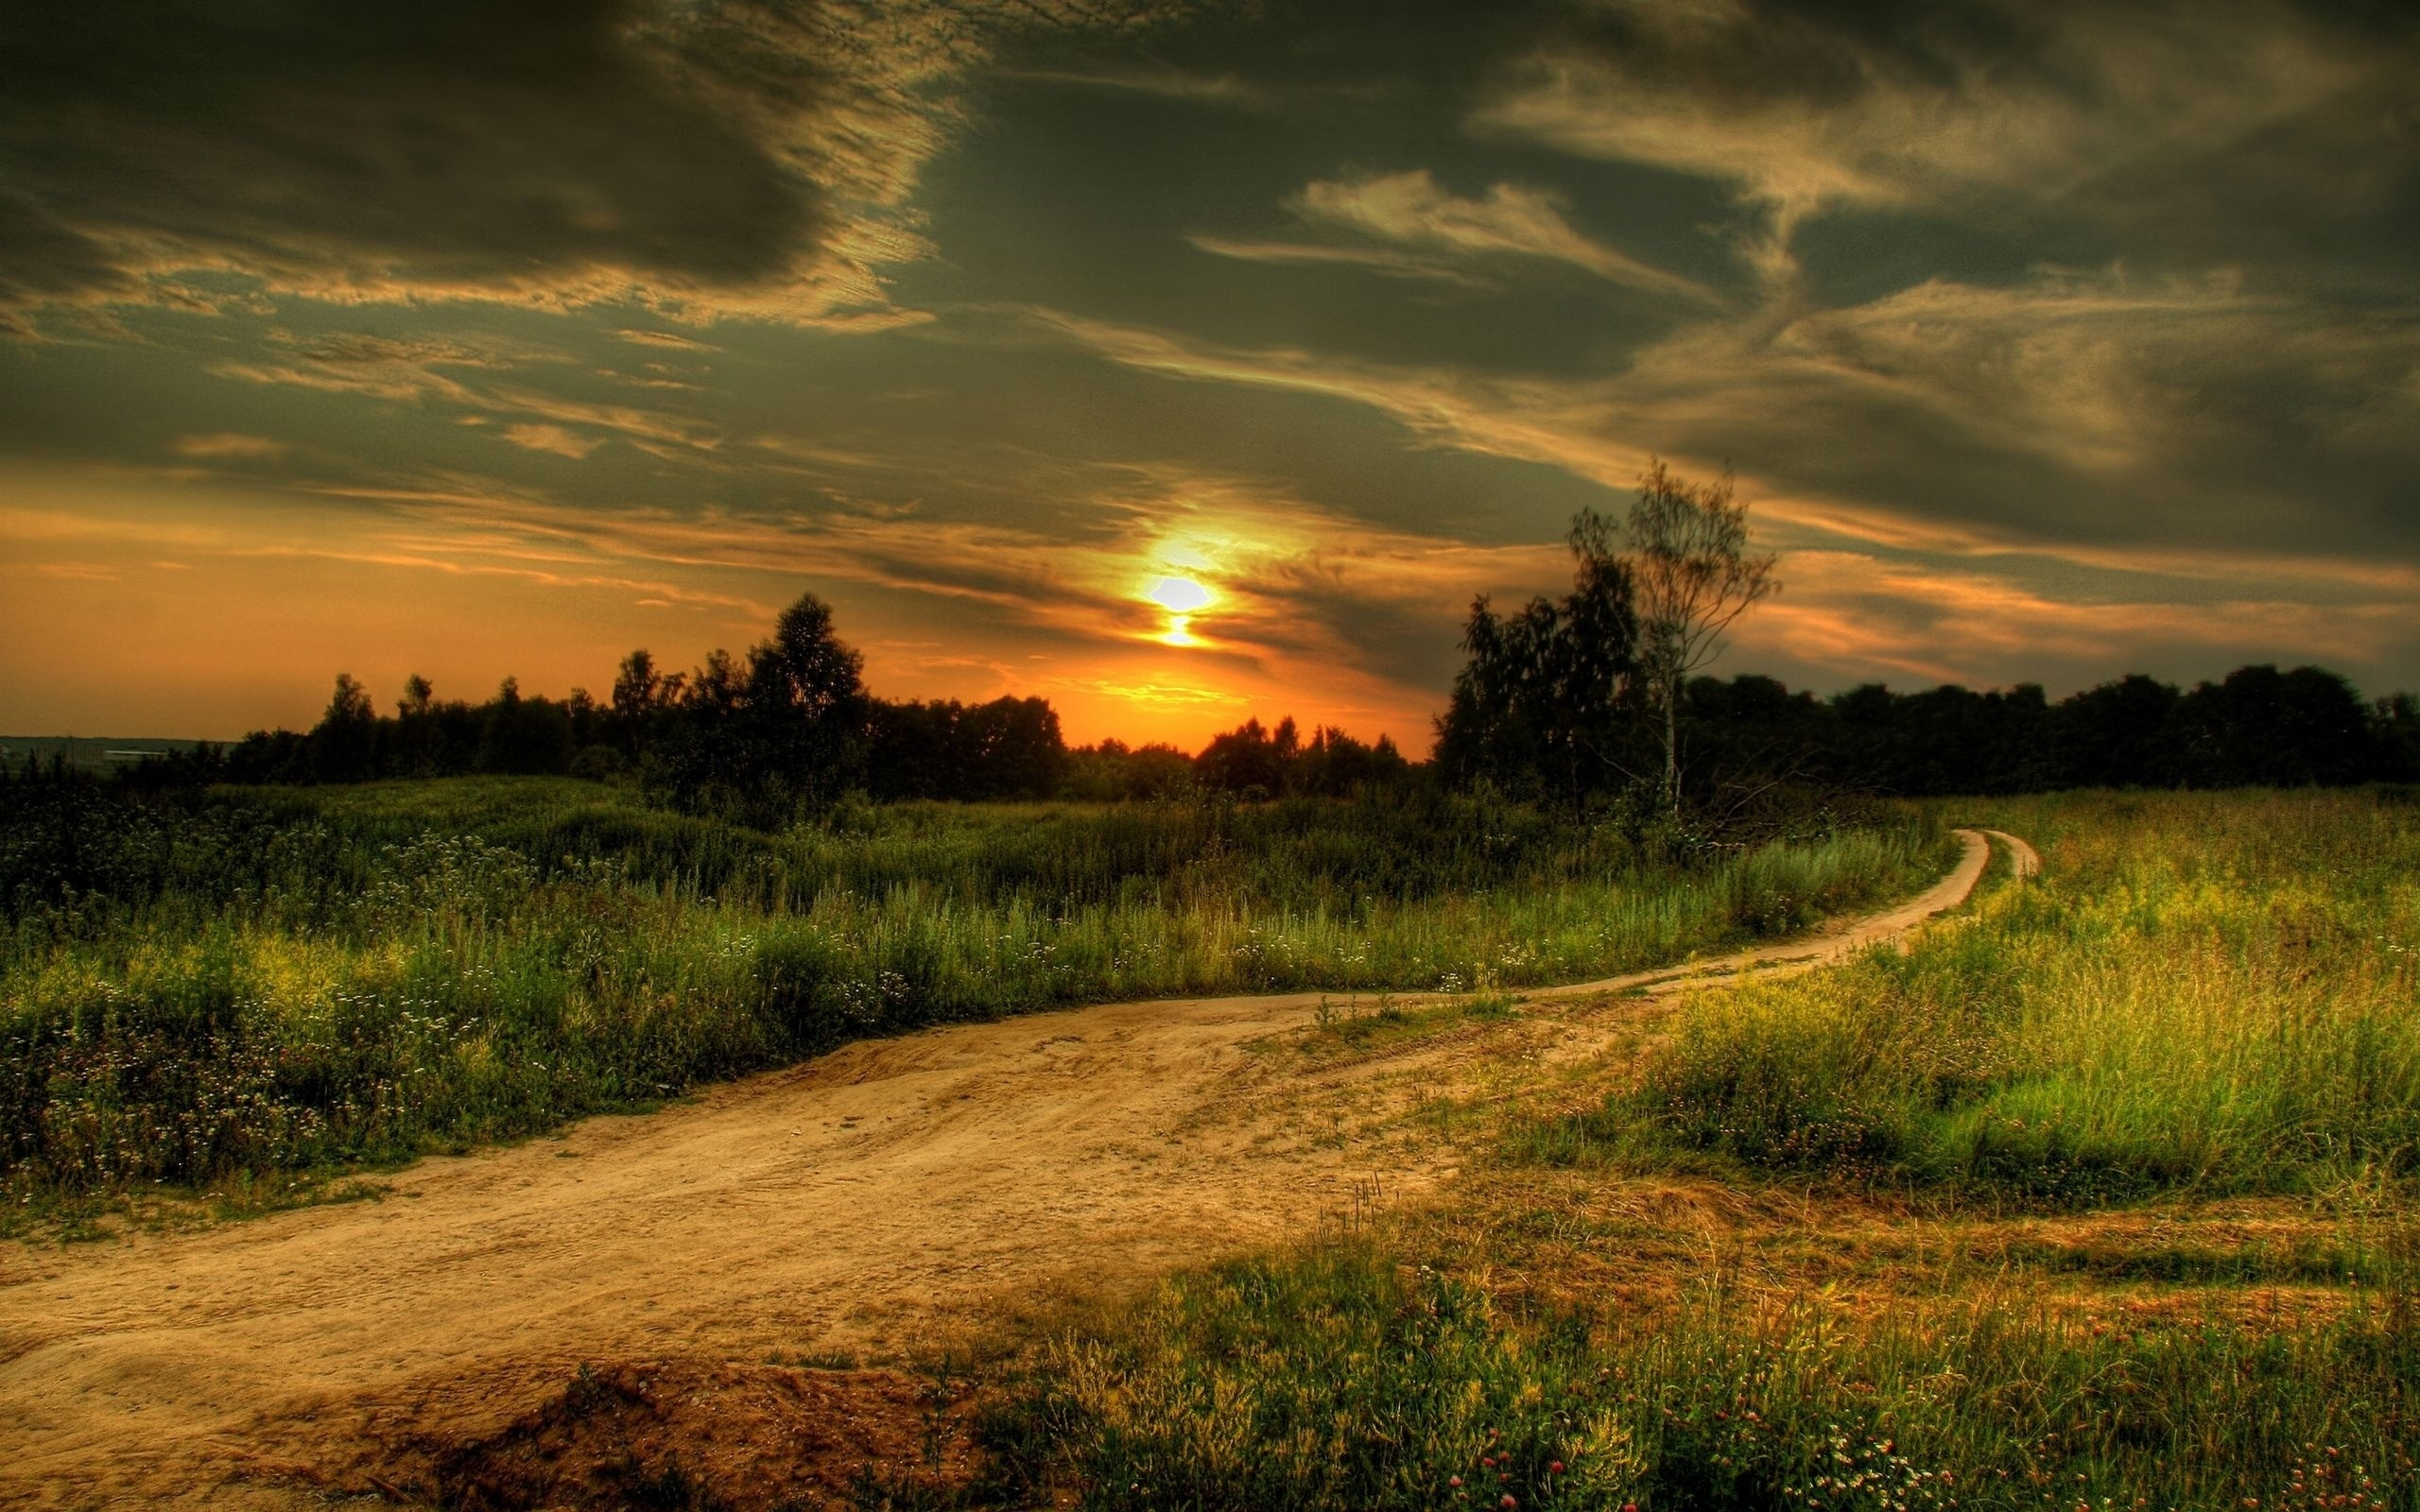 2560x1600 Sunset Road & Fields desktop PC and Mac wallpaper